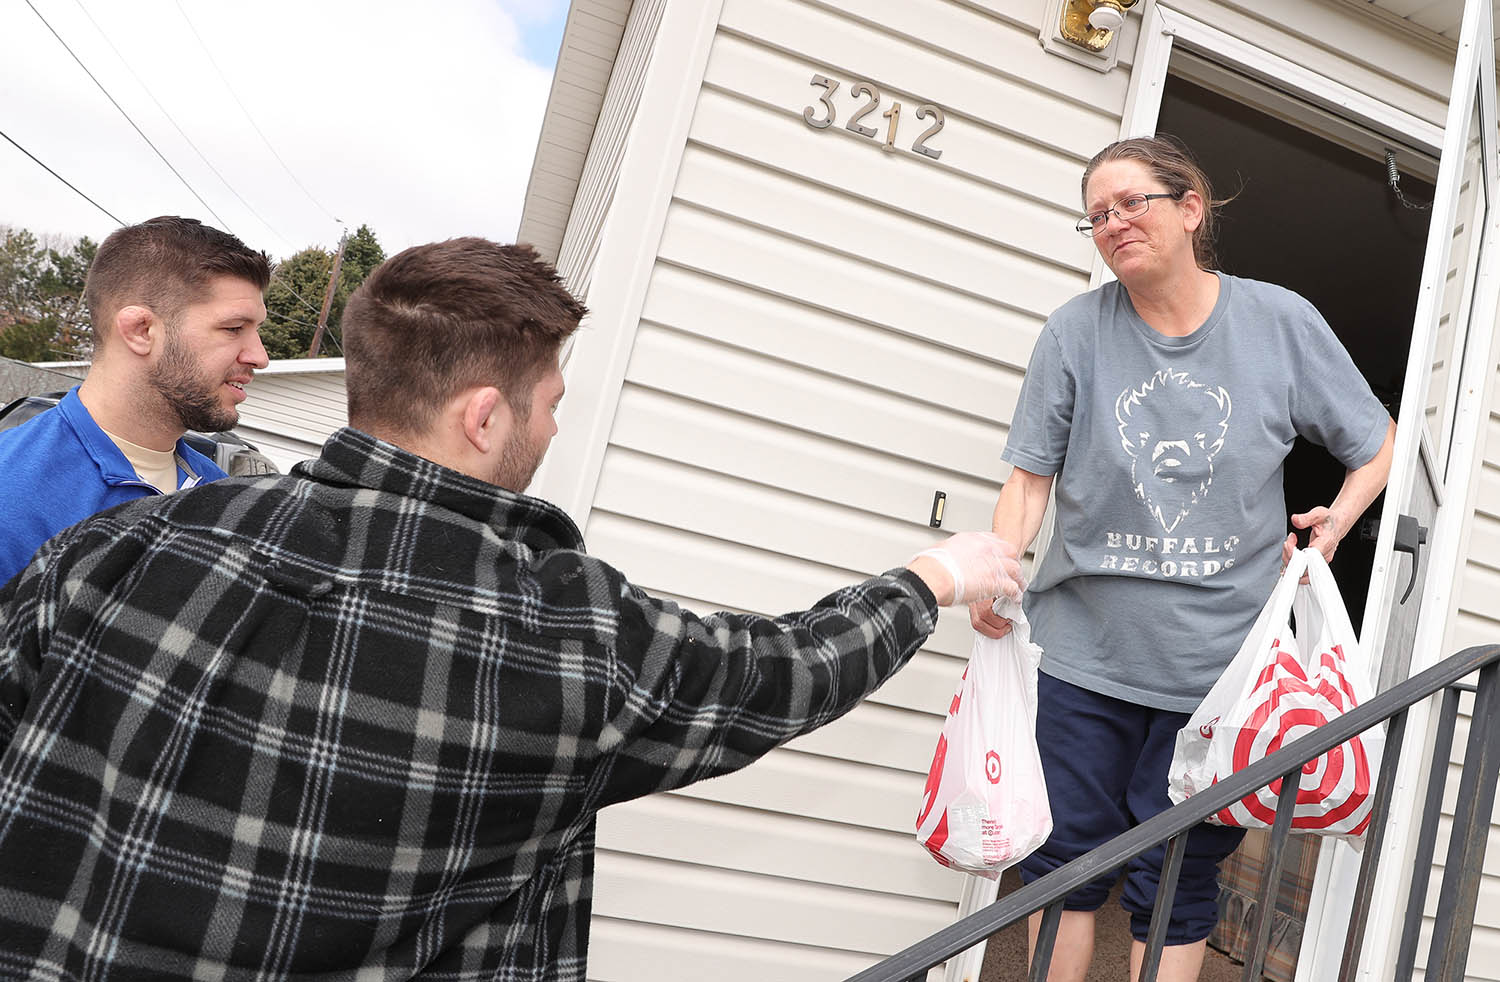 UNK wrestlers Anthony Mancini, left, and Matt Malcom deliver meals to Paula Cowen on Tuesday while volunteering for Hot Meals USA. (Photos by Corbey R. Dorsey, UNK Communications)